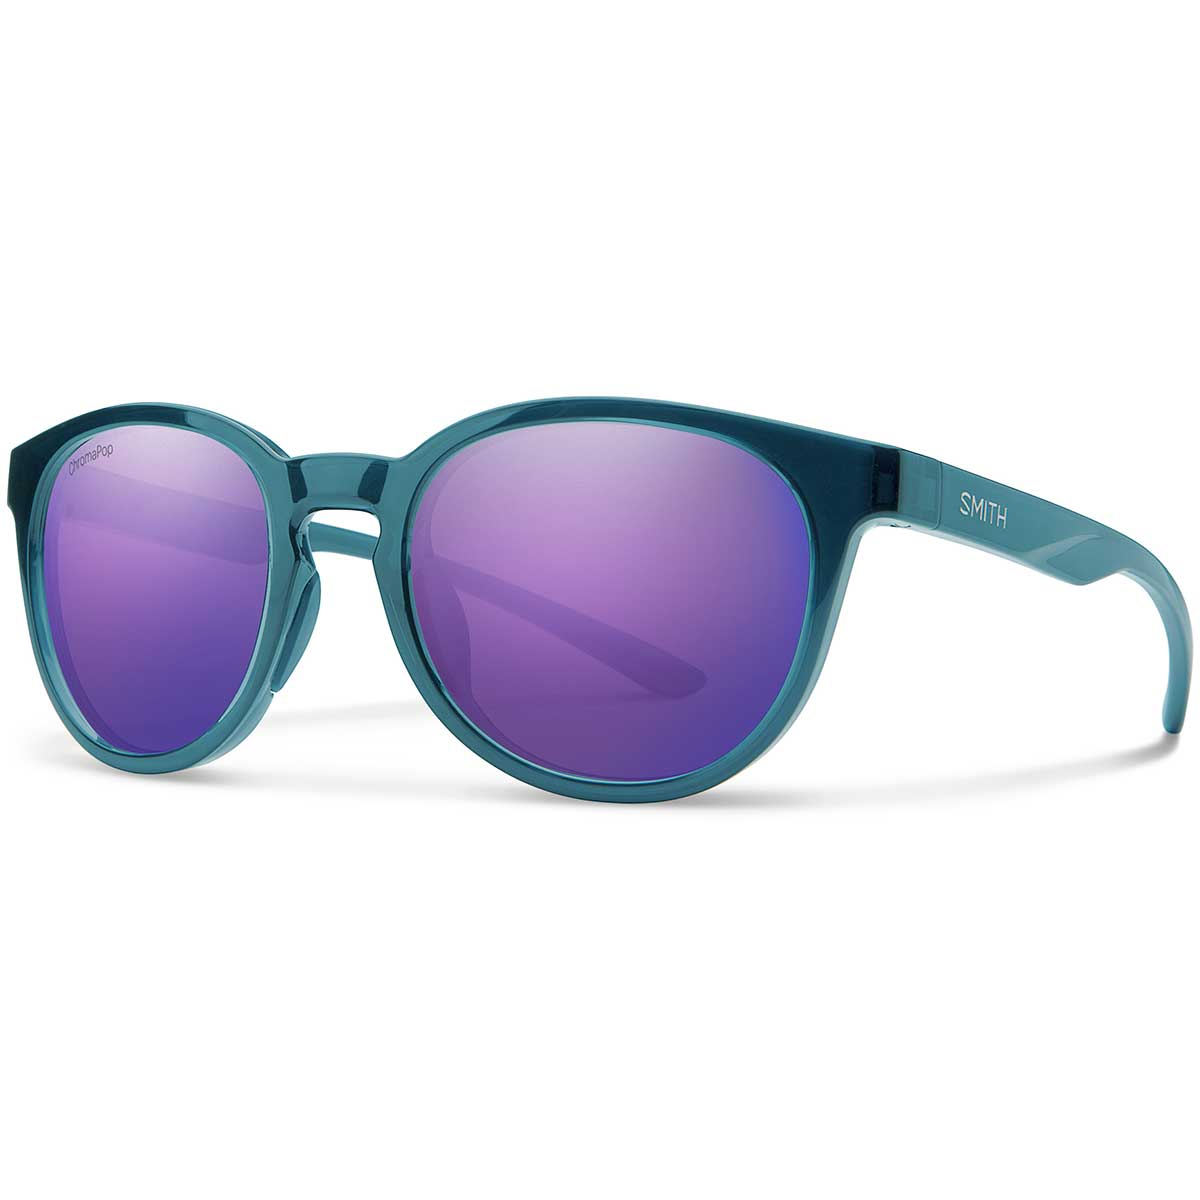 Smith Eastbank Sunglasses Chromapop in Crystal Mediterranean with Violet Mirror main view